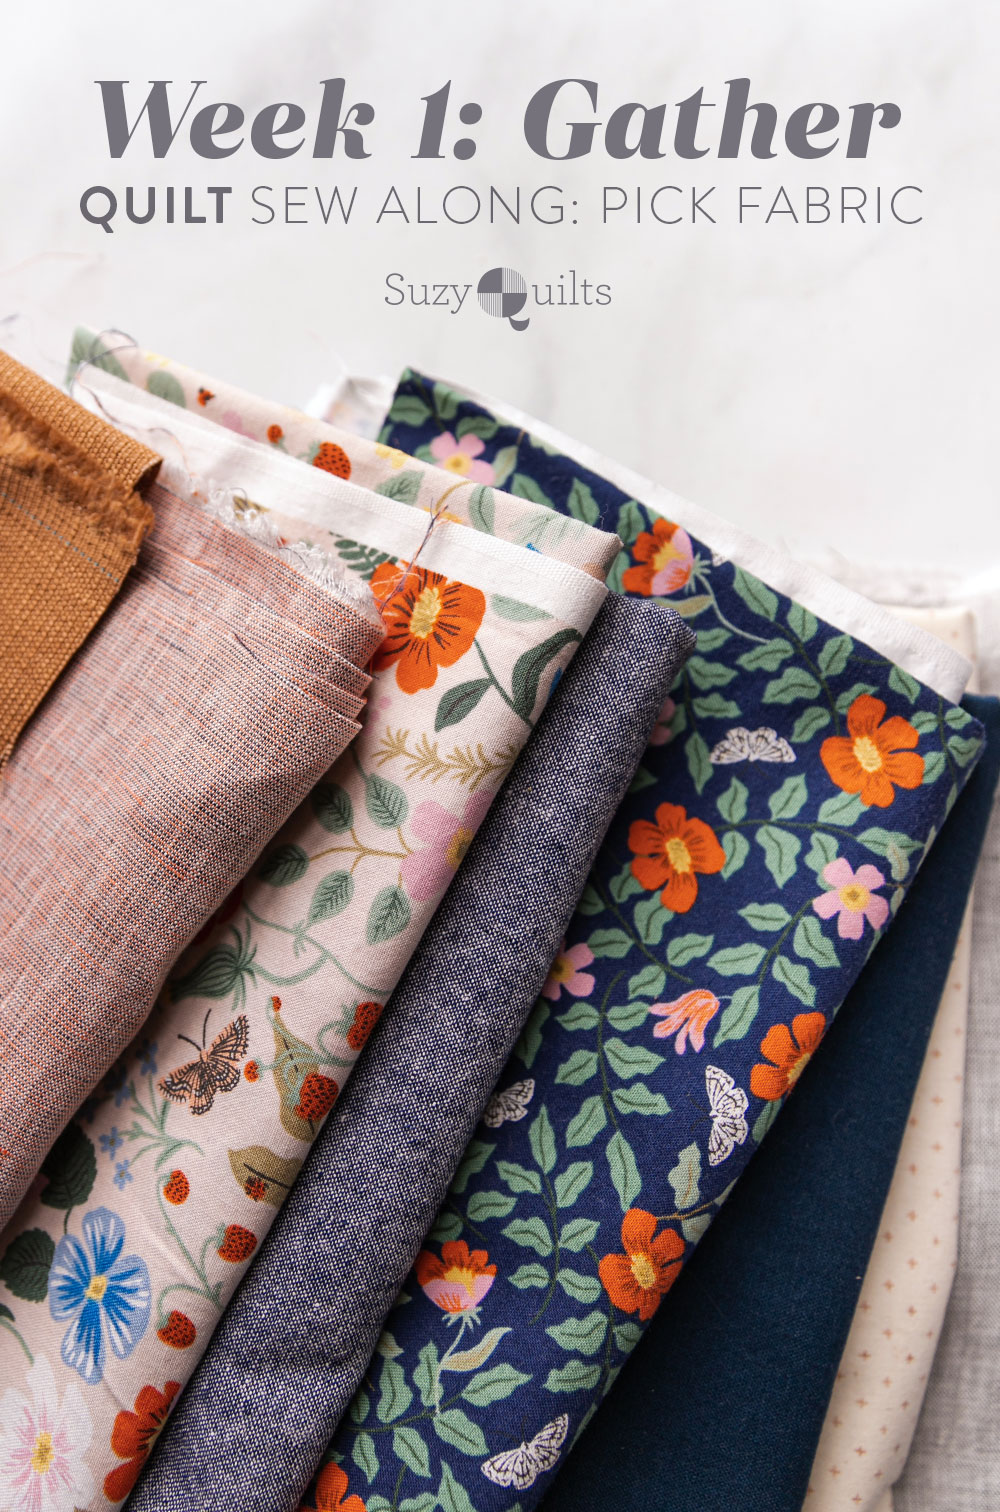 The Gather quilt sew along is an online quilting community experience! Let's make this modern quilt pattern together – one week at a time. suzyquilts.com #quiltalong #quiltpattern